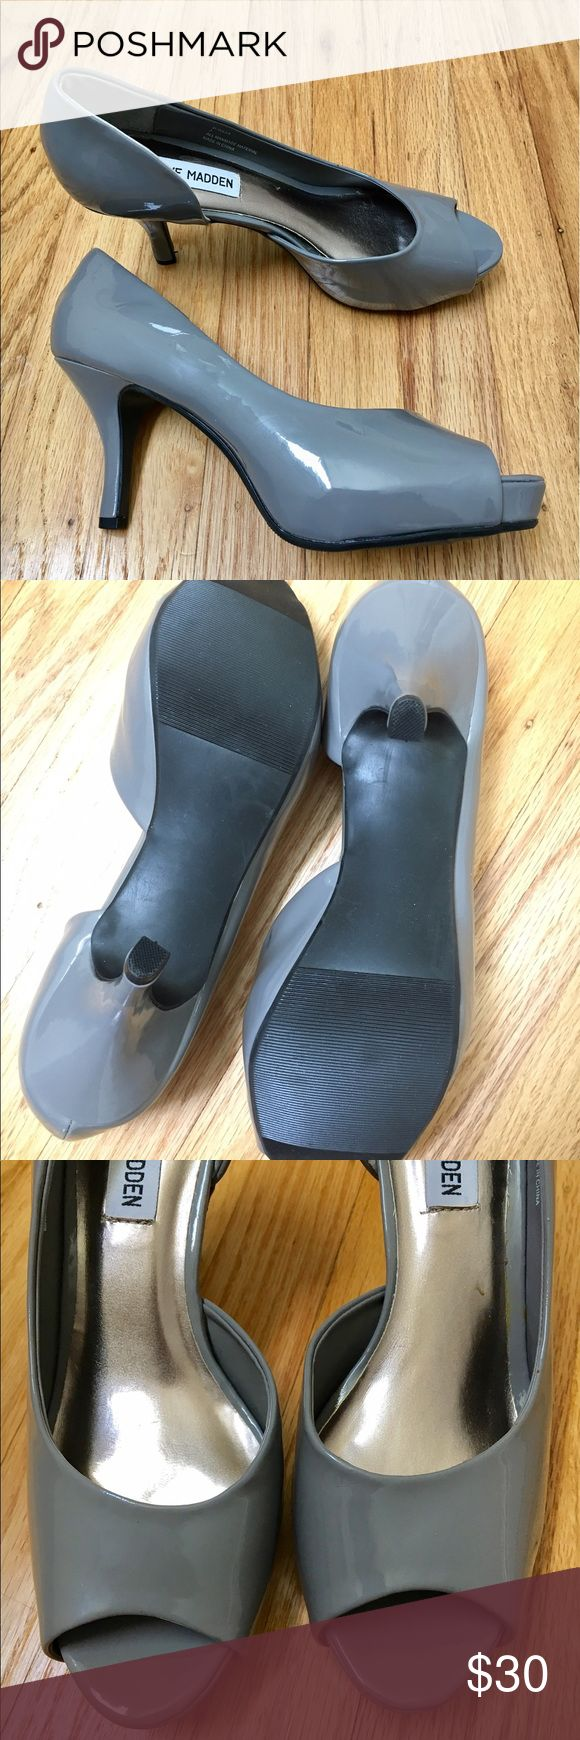 Gray Peeptoes Steve Madden New NWOT. Steve Madden size 7. Sticker residue inside and scuff mark outside see pics. Only tried on around Store but I've held onto these for sooo long that some glue has come off so the shiny fabric has loosen in some areas. Smoke and Pet Free Home. Offers welcomed! Steve Madden Shoes